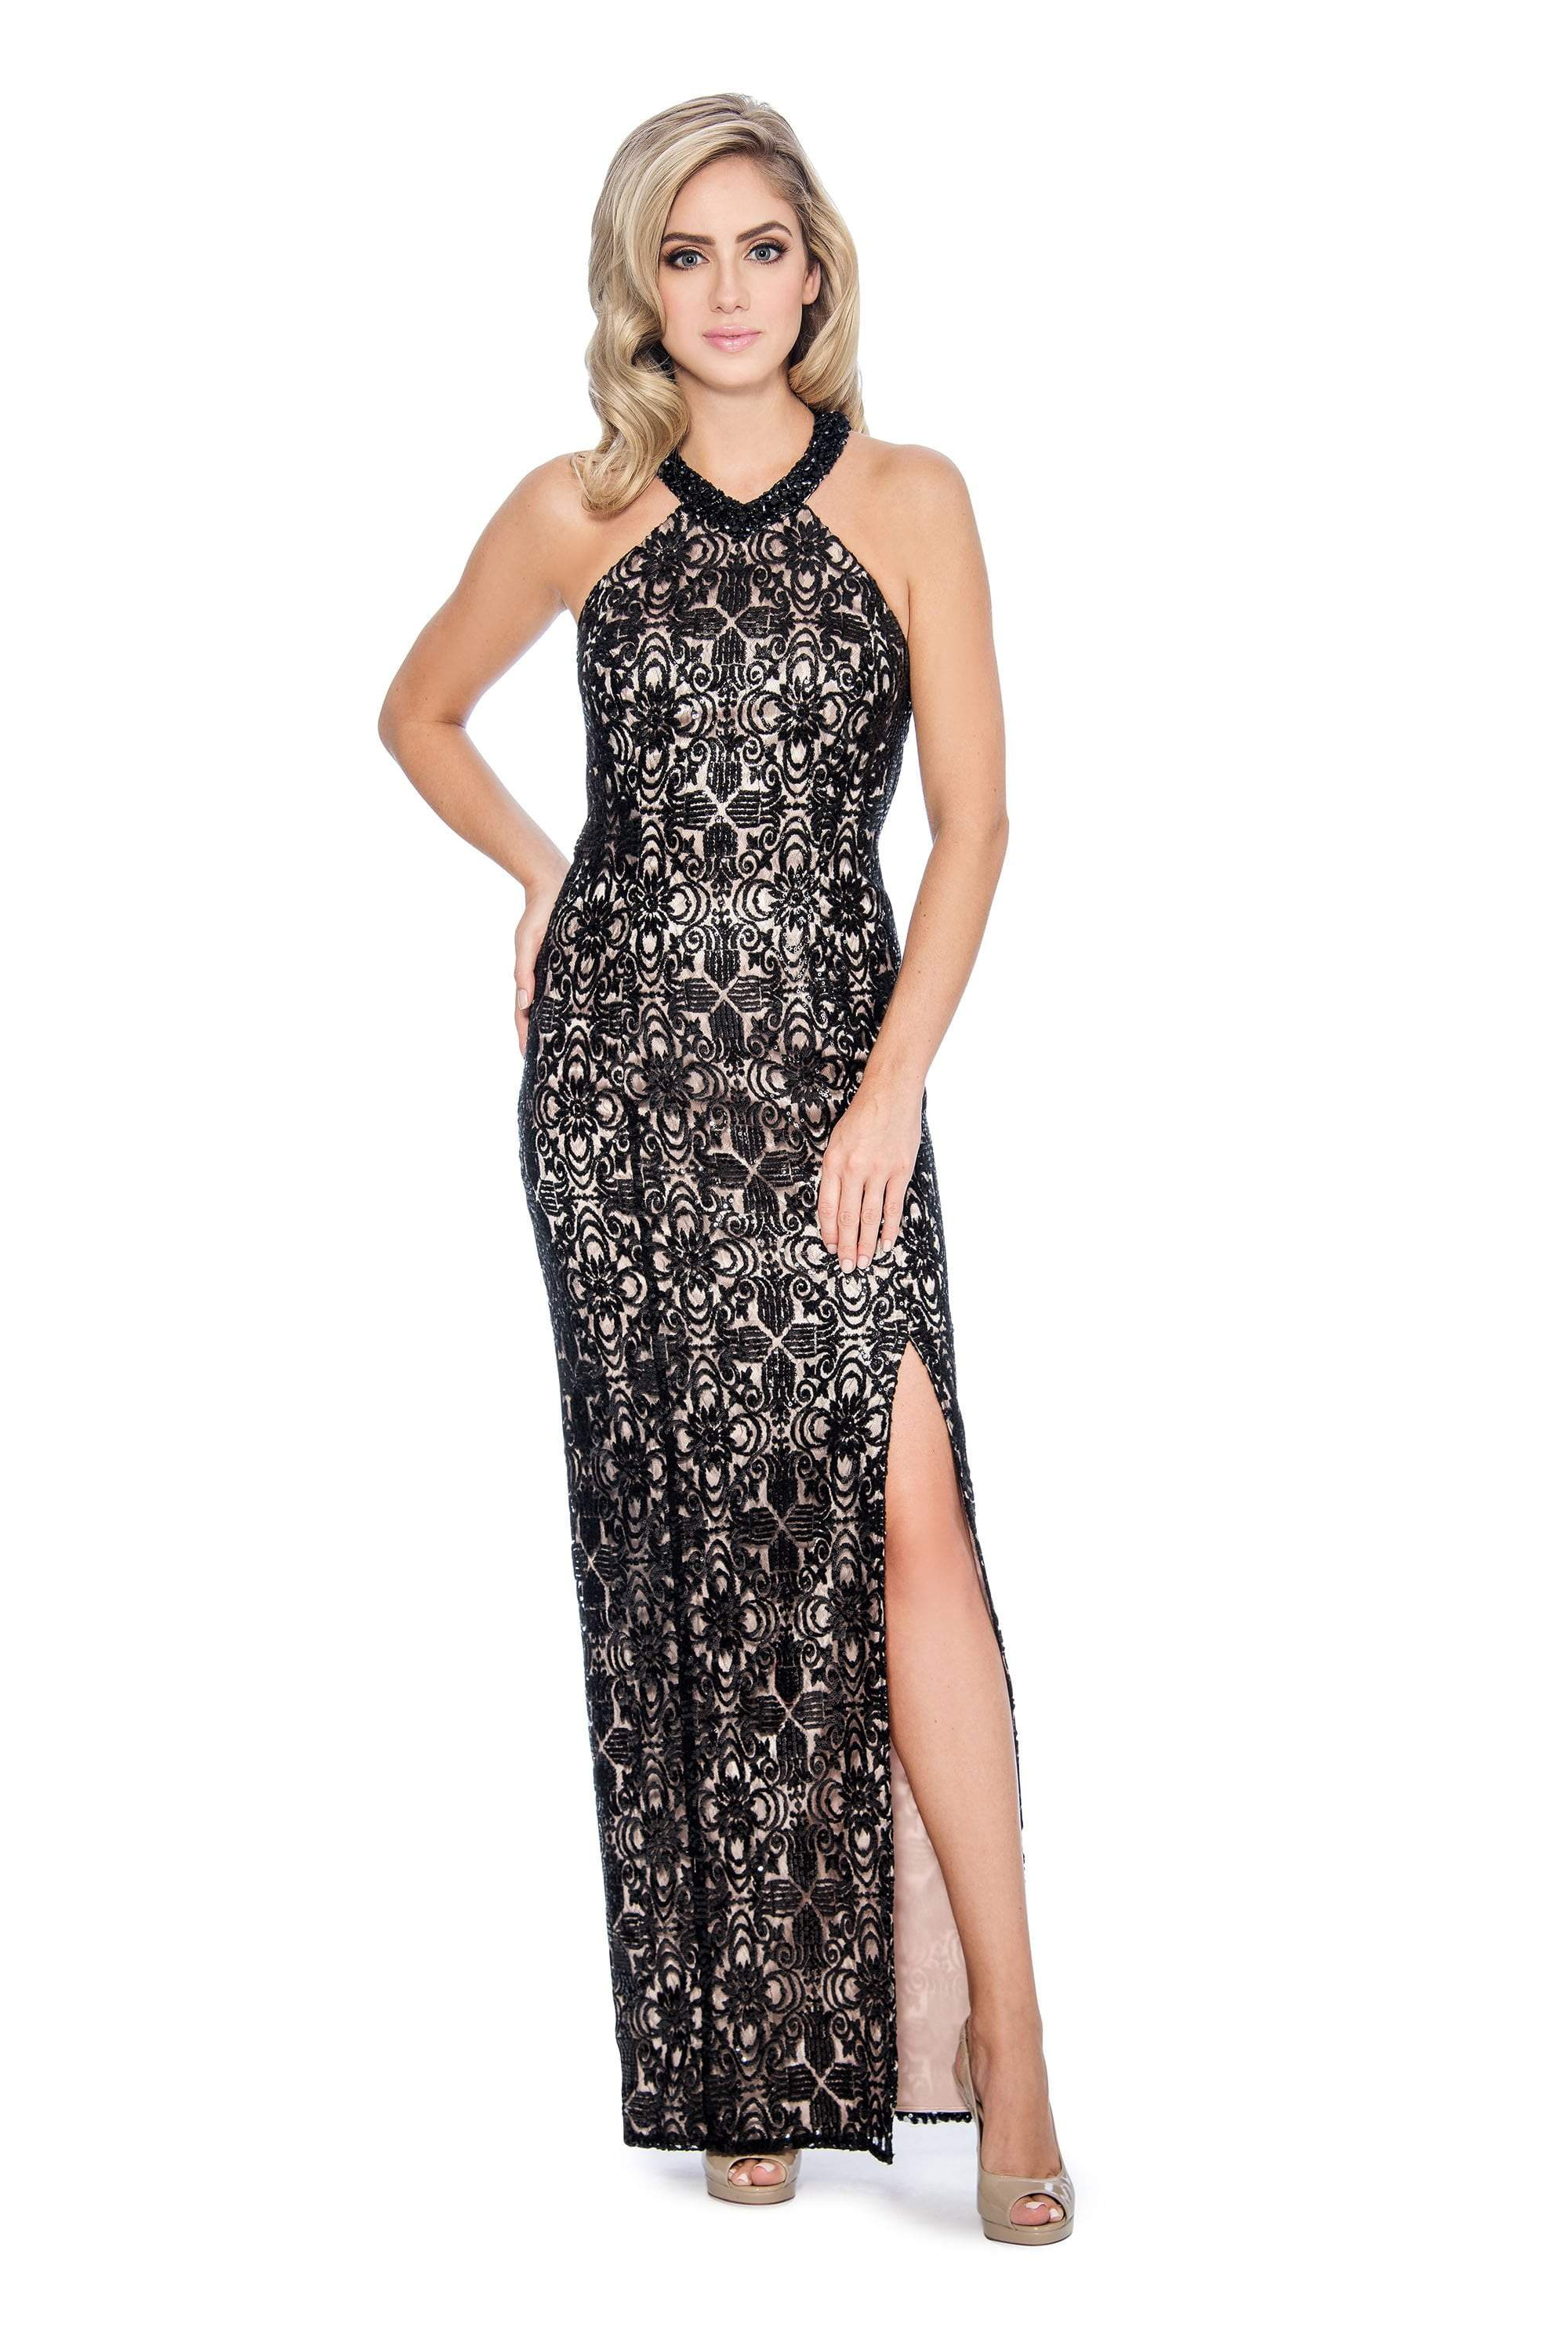 Decode 1.8 - 184400 Sequined Halter Dress with Back Cutouts In Black and Pink